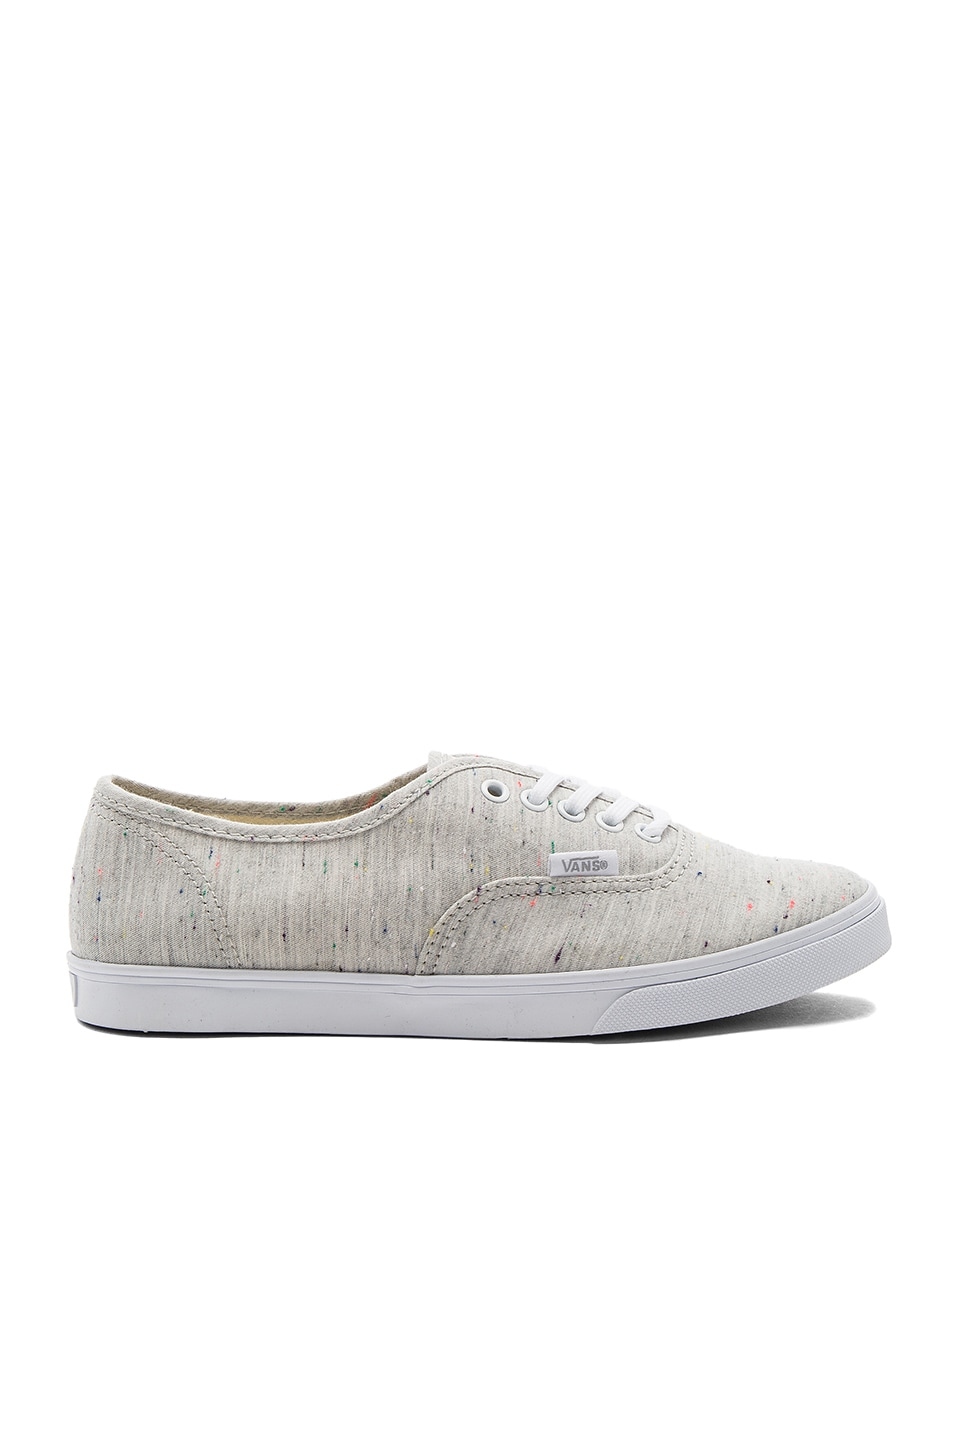 Vans Authentic Lo Pro Sneaker in Gray & True White